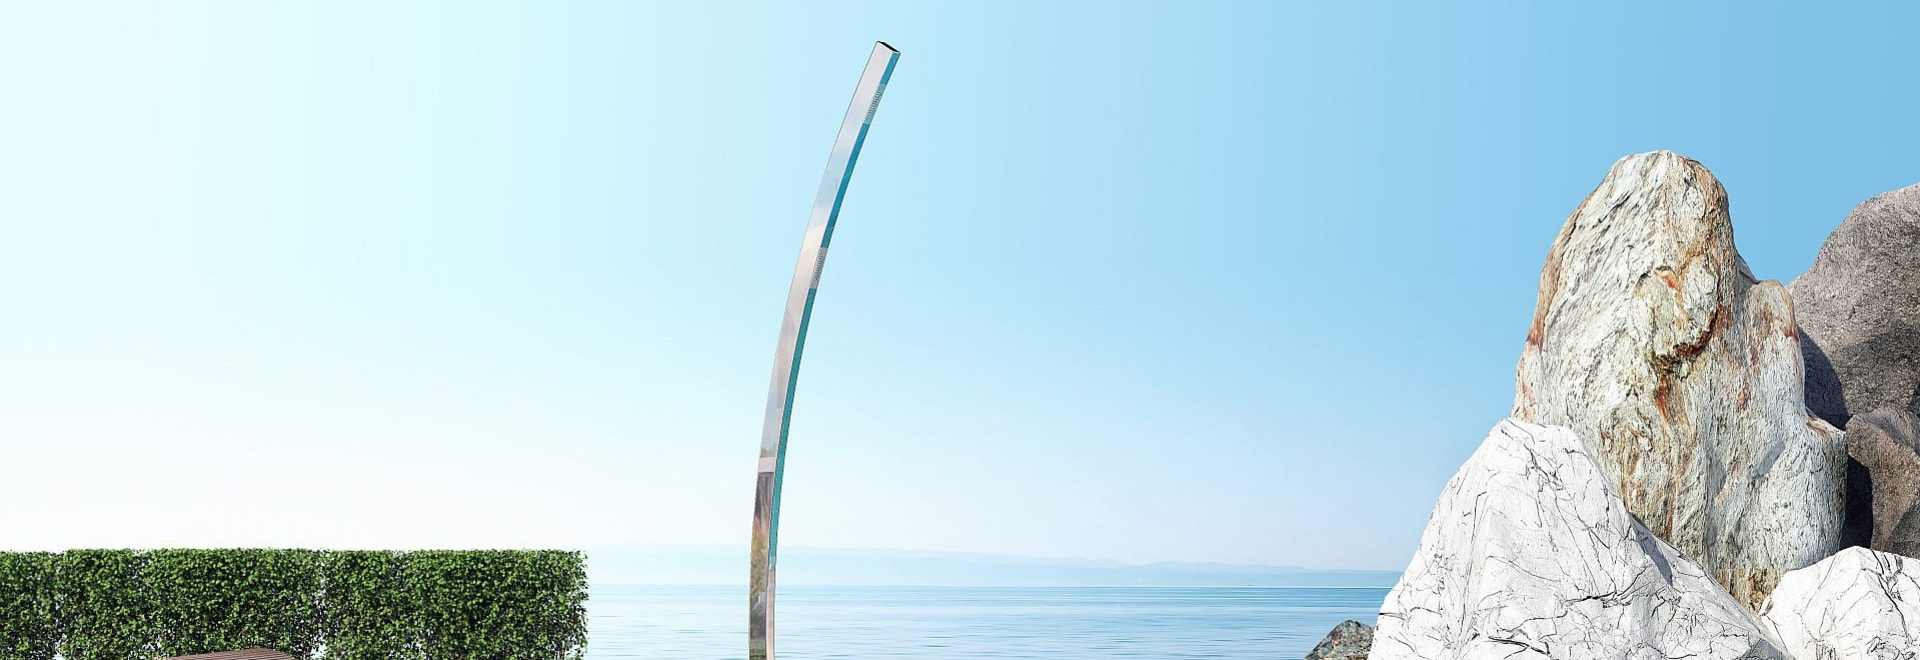 Interlude E - Stainless steel nautical outdoor shower for swimming pool and garden